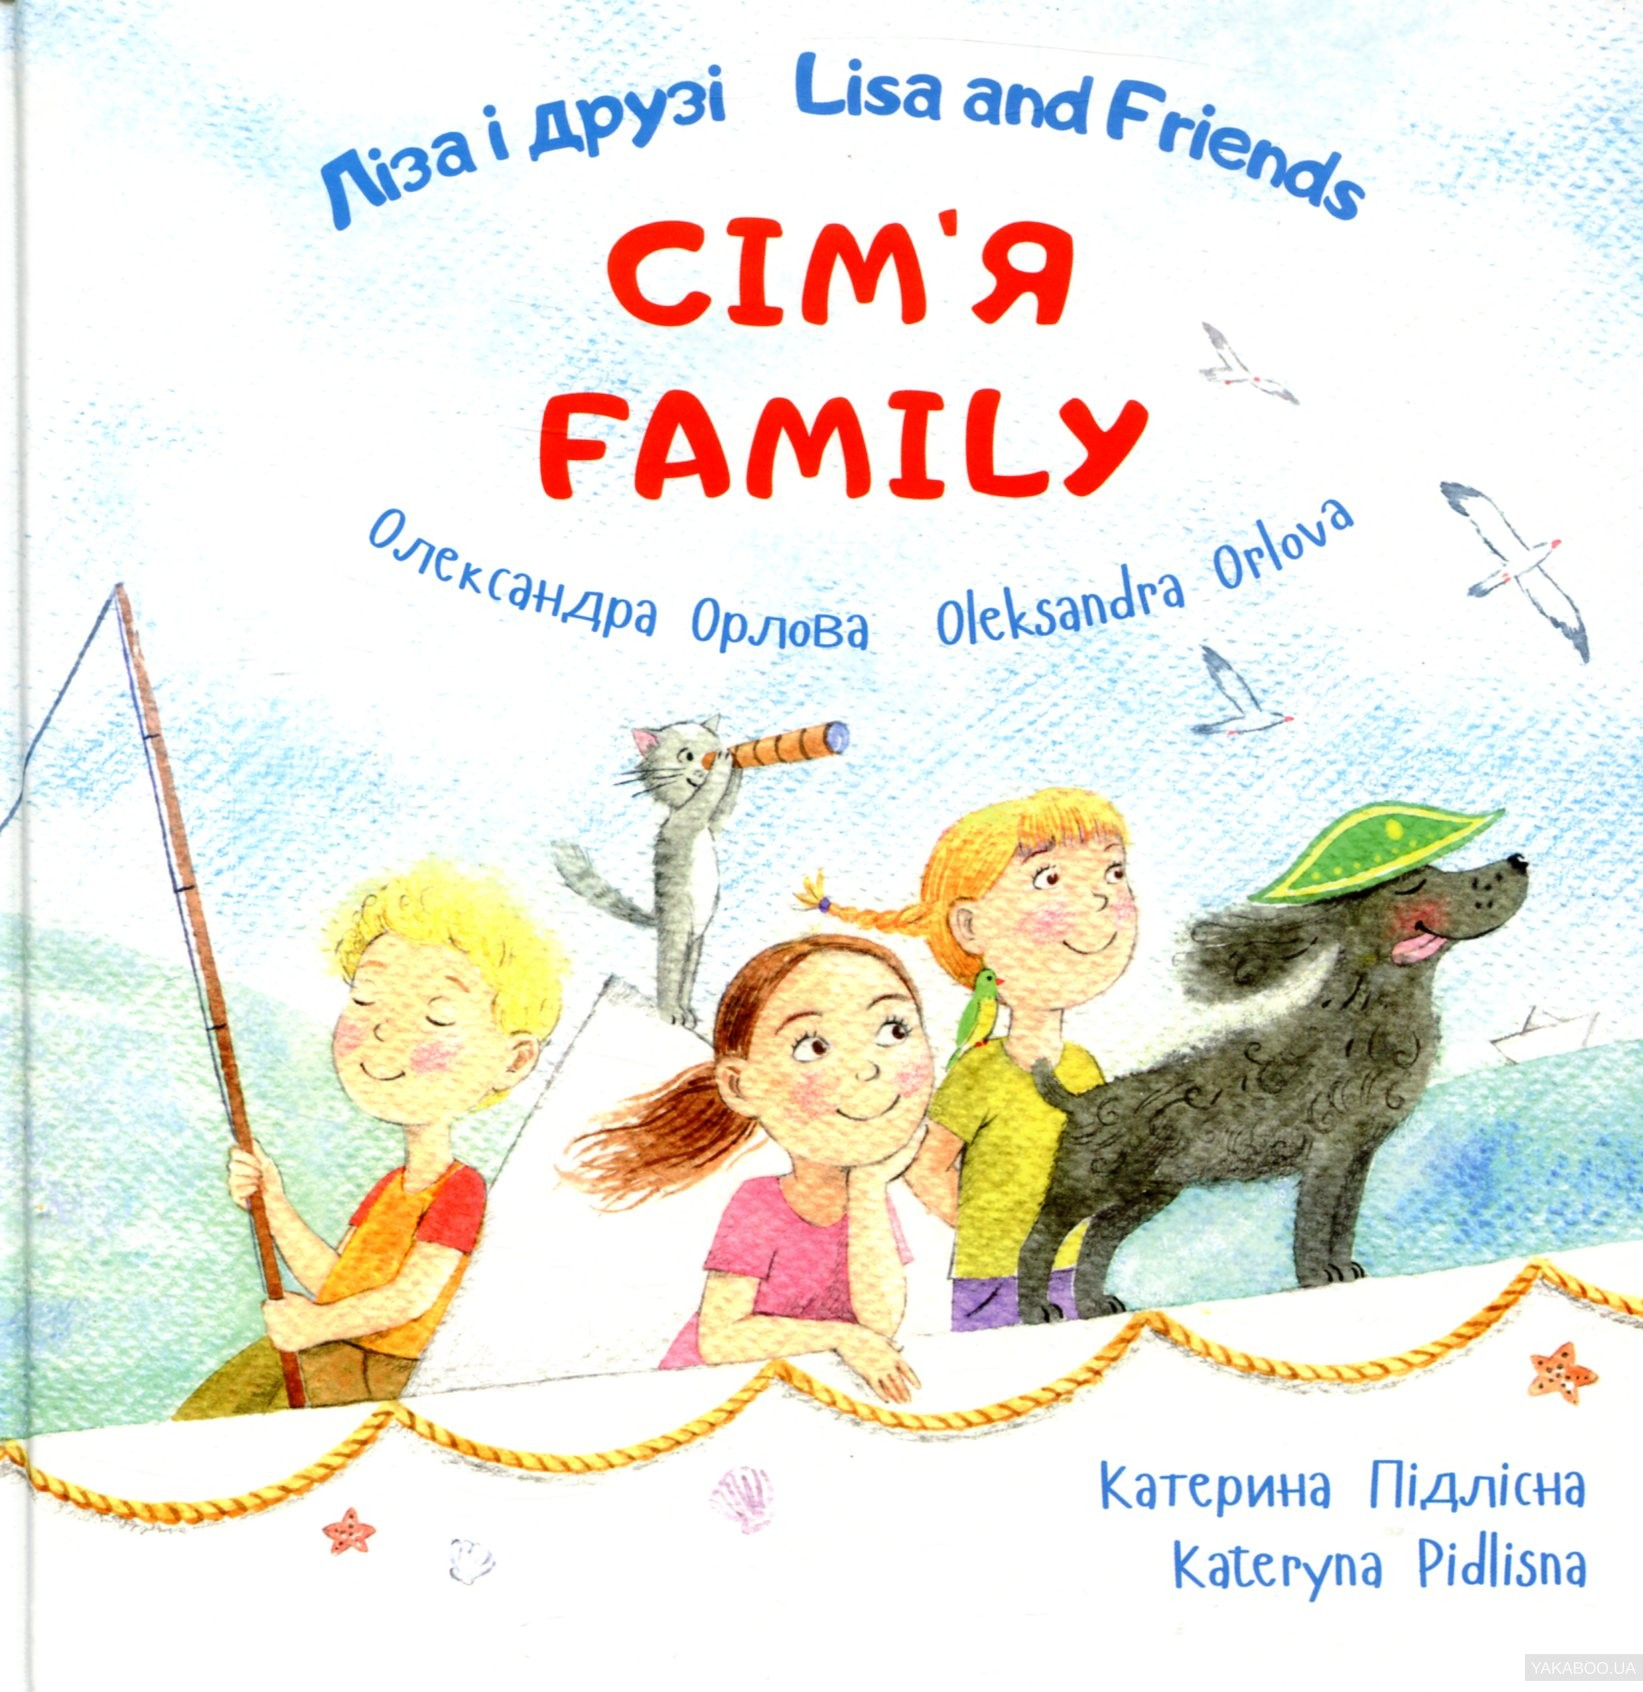 Ліза і друзі. Lisa and Friends. Сім'я. Family